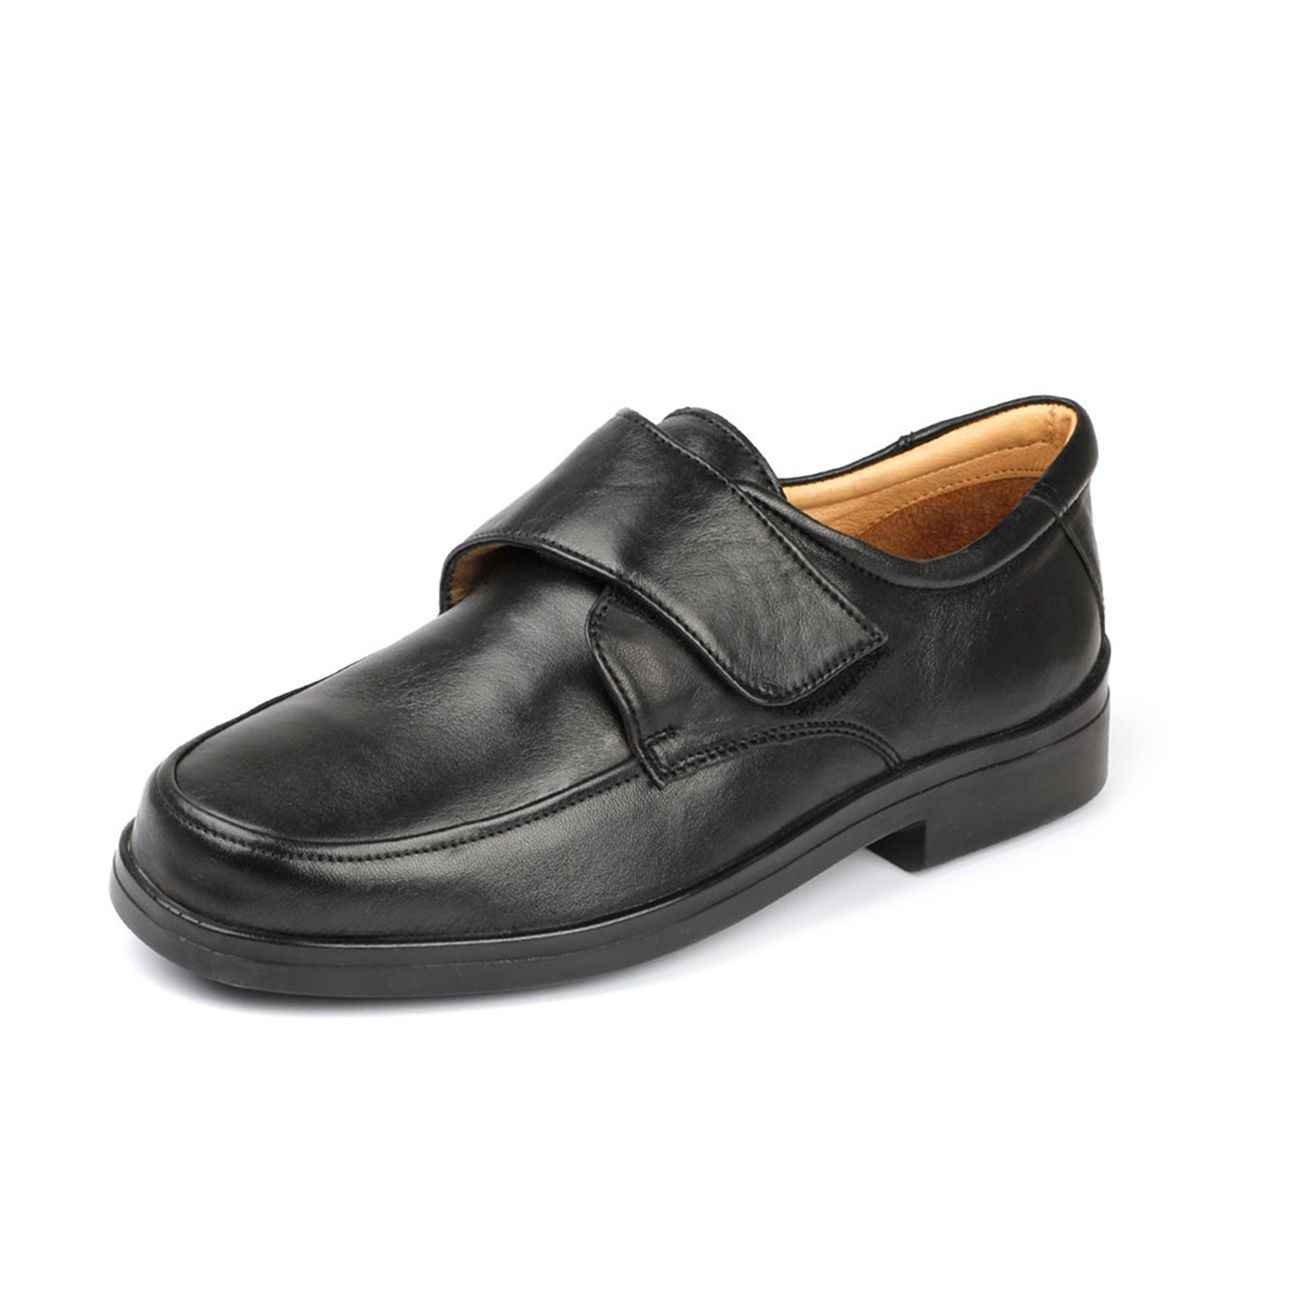 Terry Roomy Shoe and men's wider fitting shoes